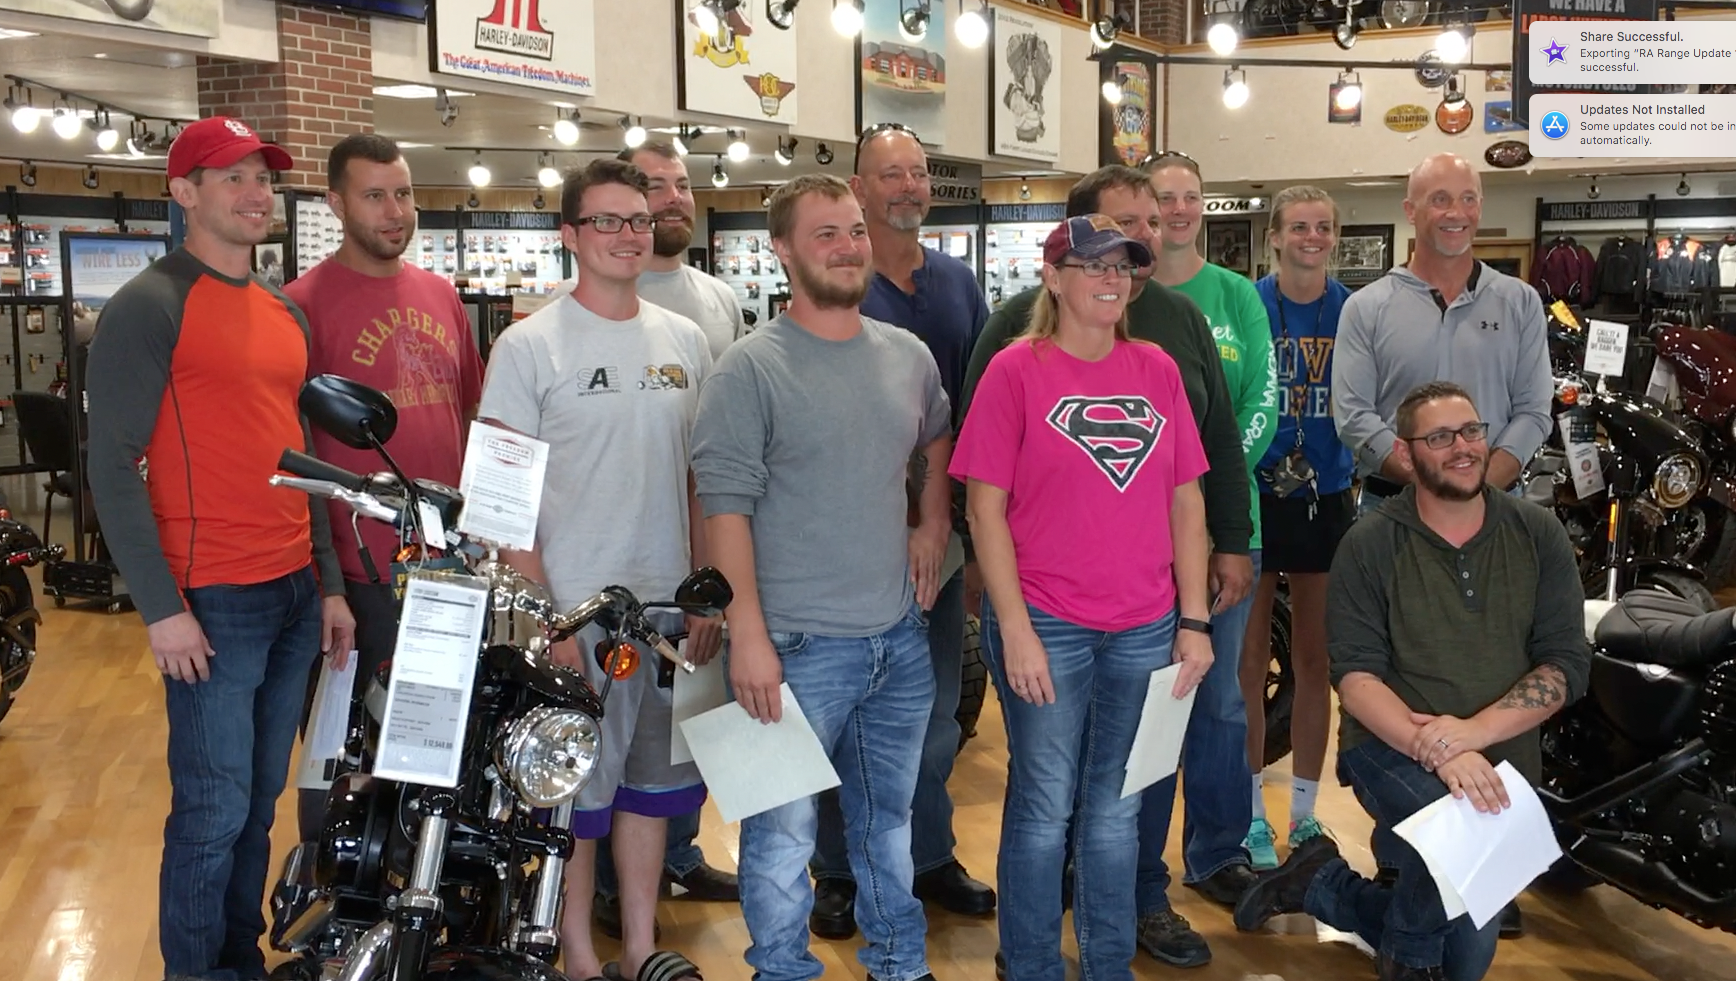 A group of Harley Davidson Riding Academy students posing for a photo after graduating the class.